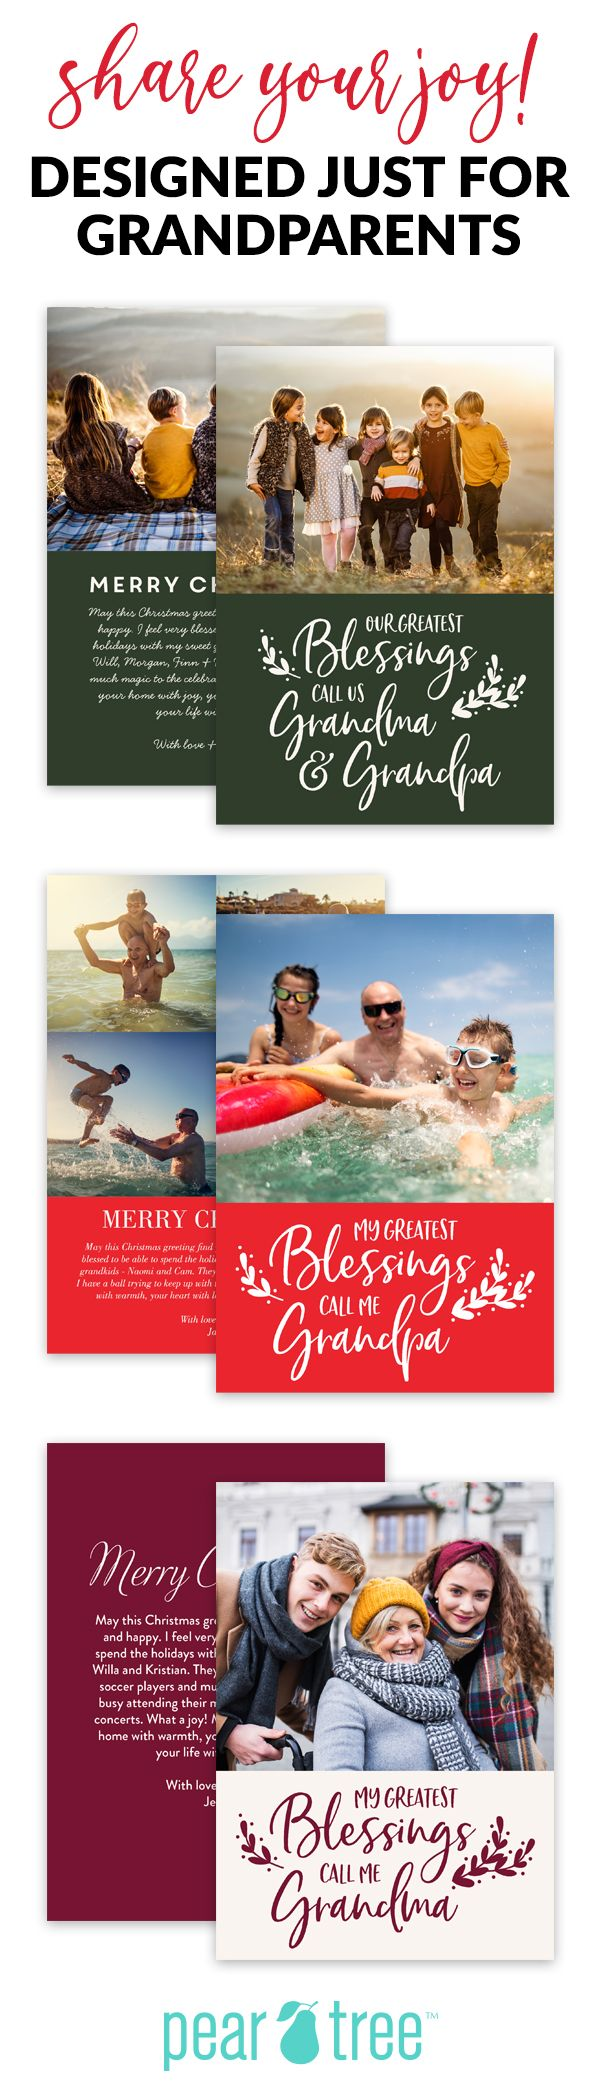 Happyt Holidays Christmas Cards 2021 Trifold Thoughts Heart Grandparents Christmas Cards Grandparents Christmas Christmas Cards Grandparents Card